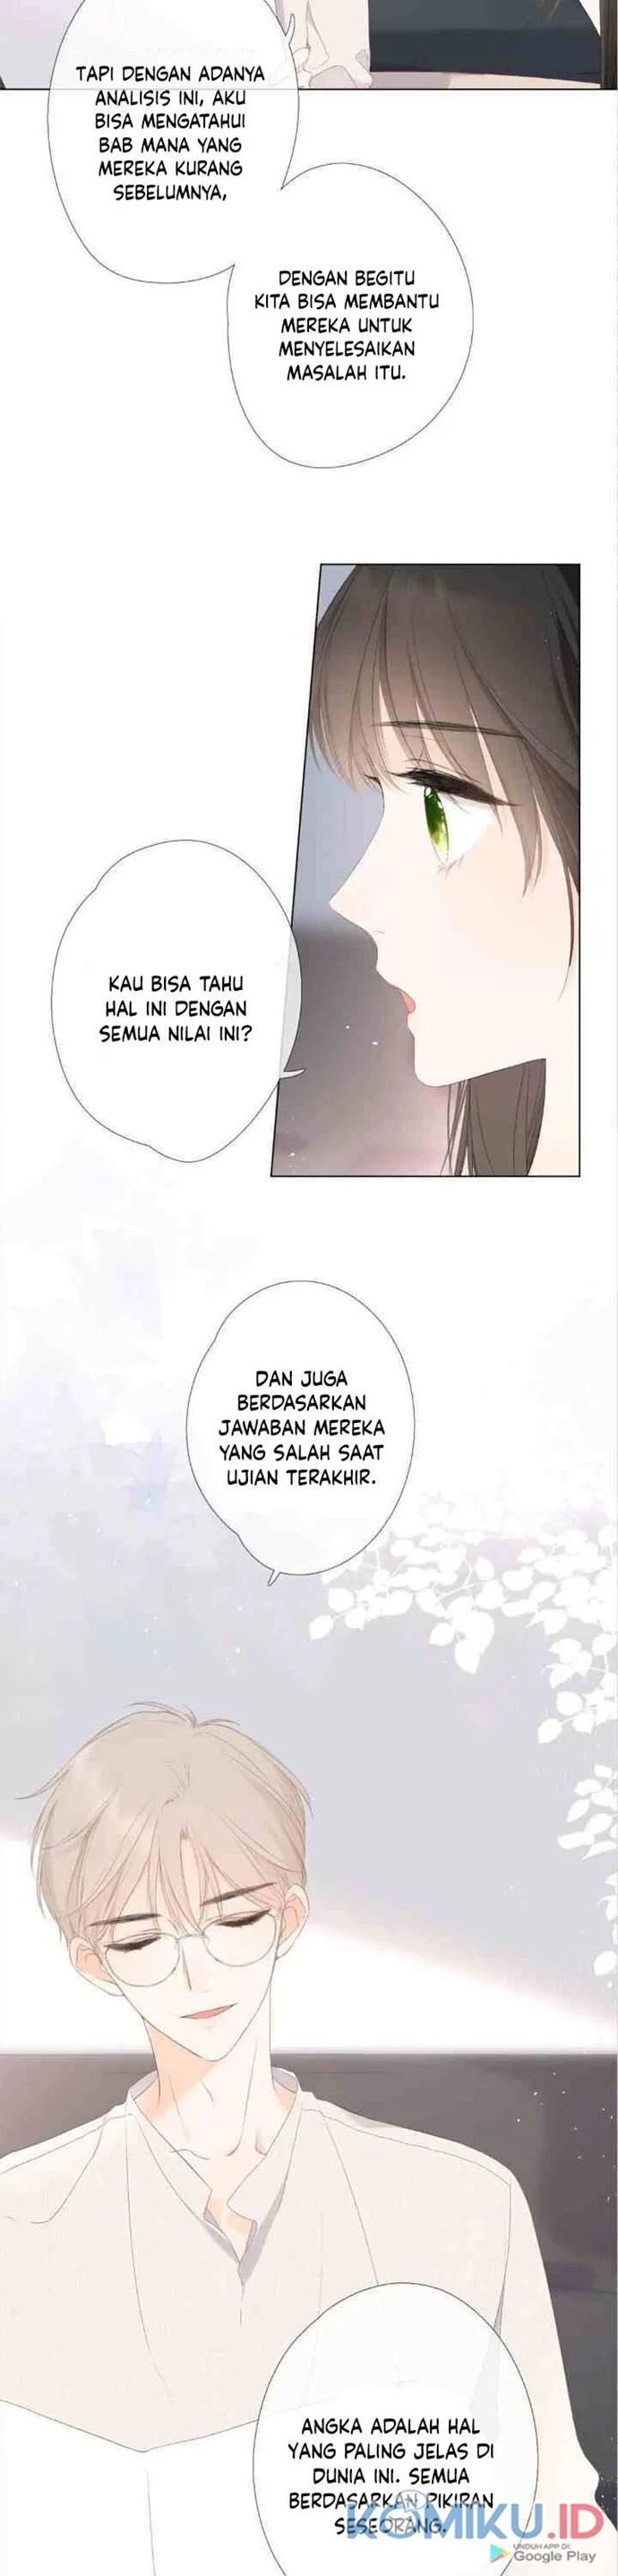 Once More Chapter 35